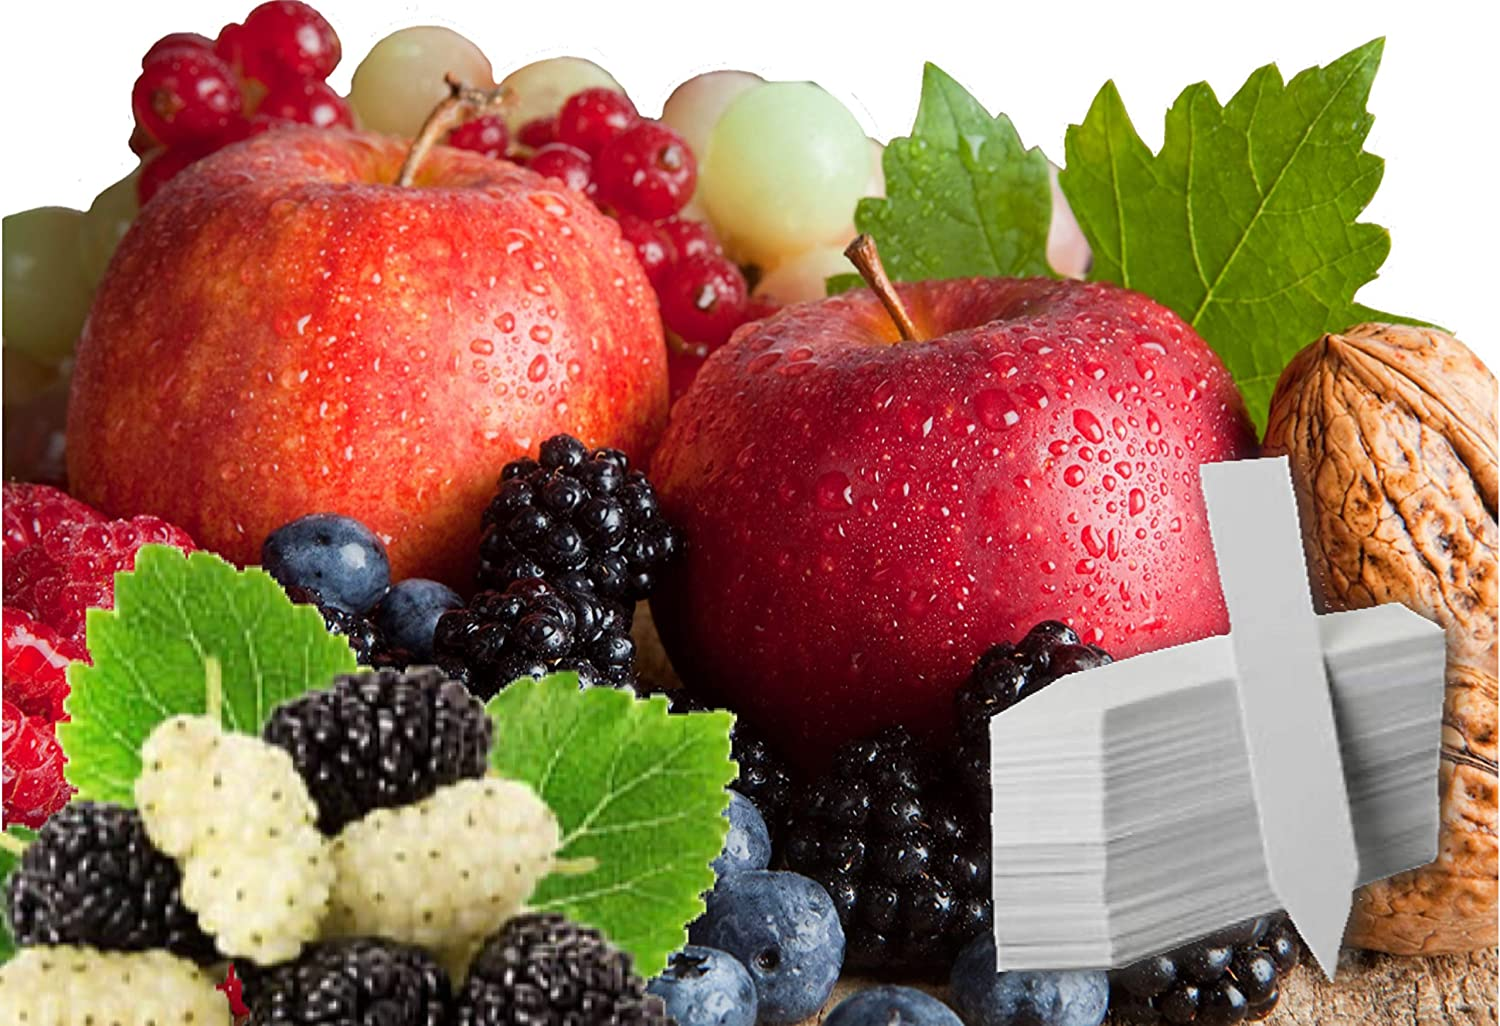 Fruit Combo Pack Raspberry, BlackBerry, Blueberry, Strawberry, Apple, Mulberry 575+ Seeds UPC 695928808755 & 4 Free Plant Markers